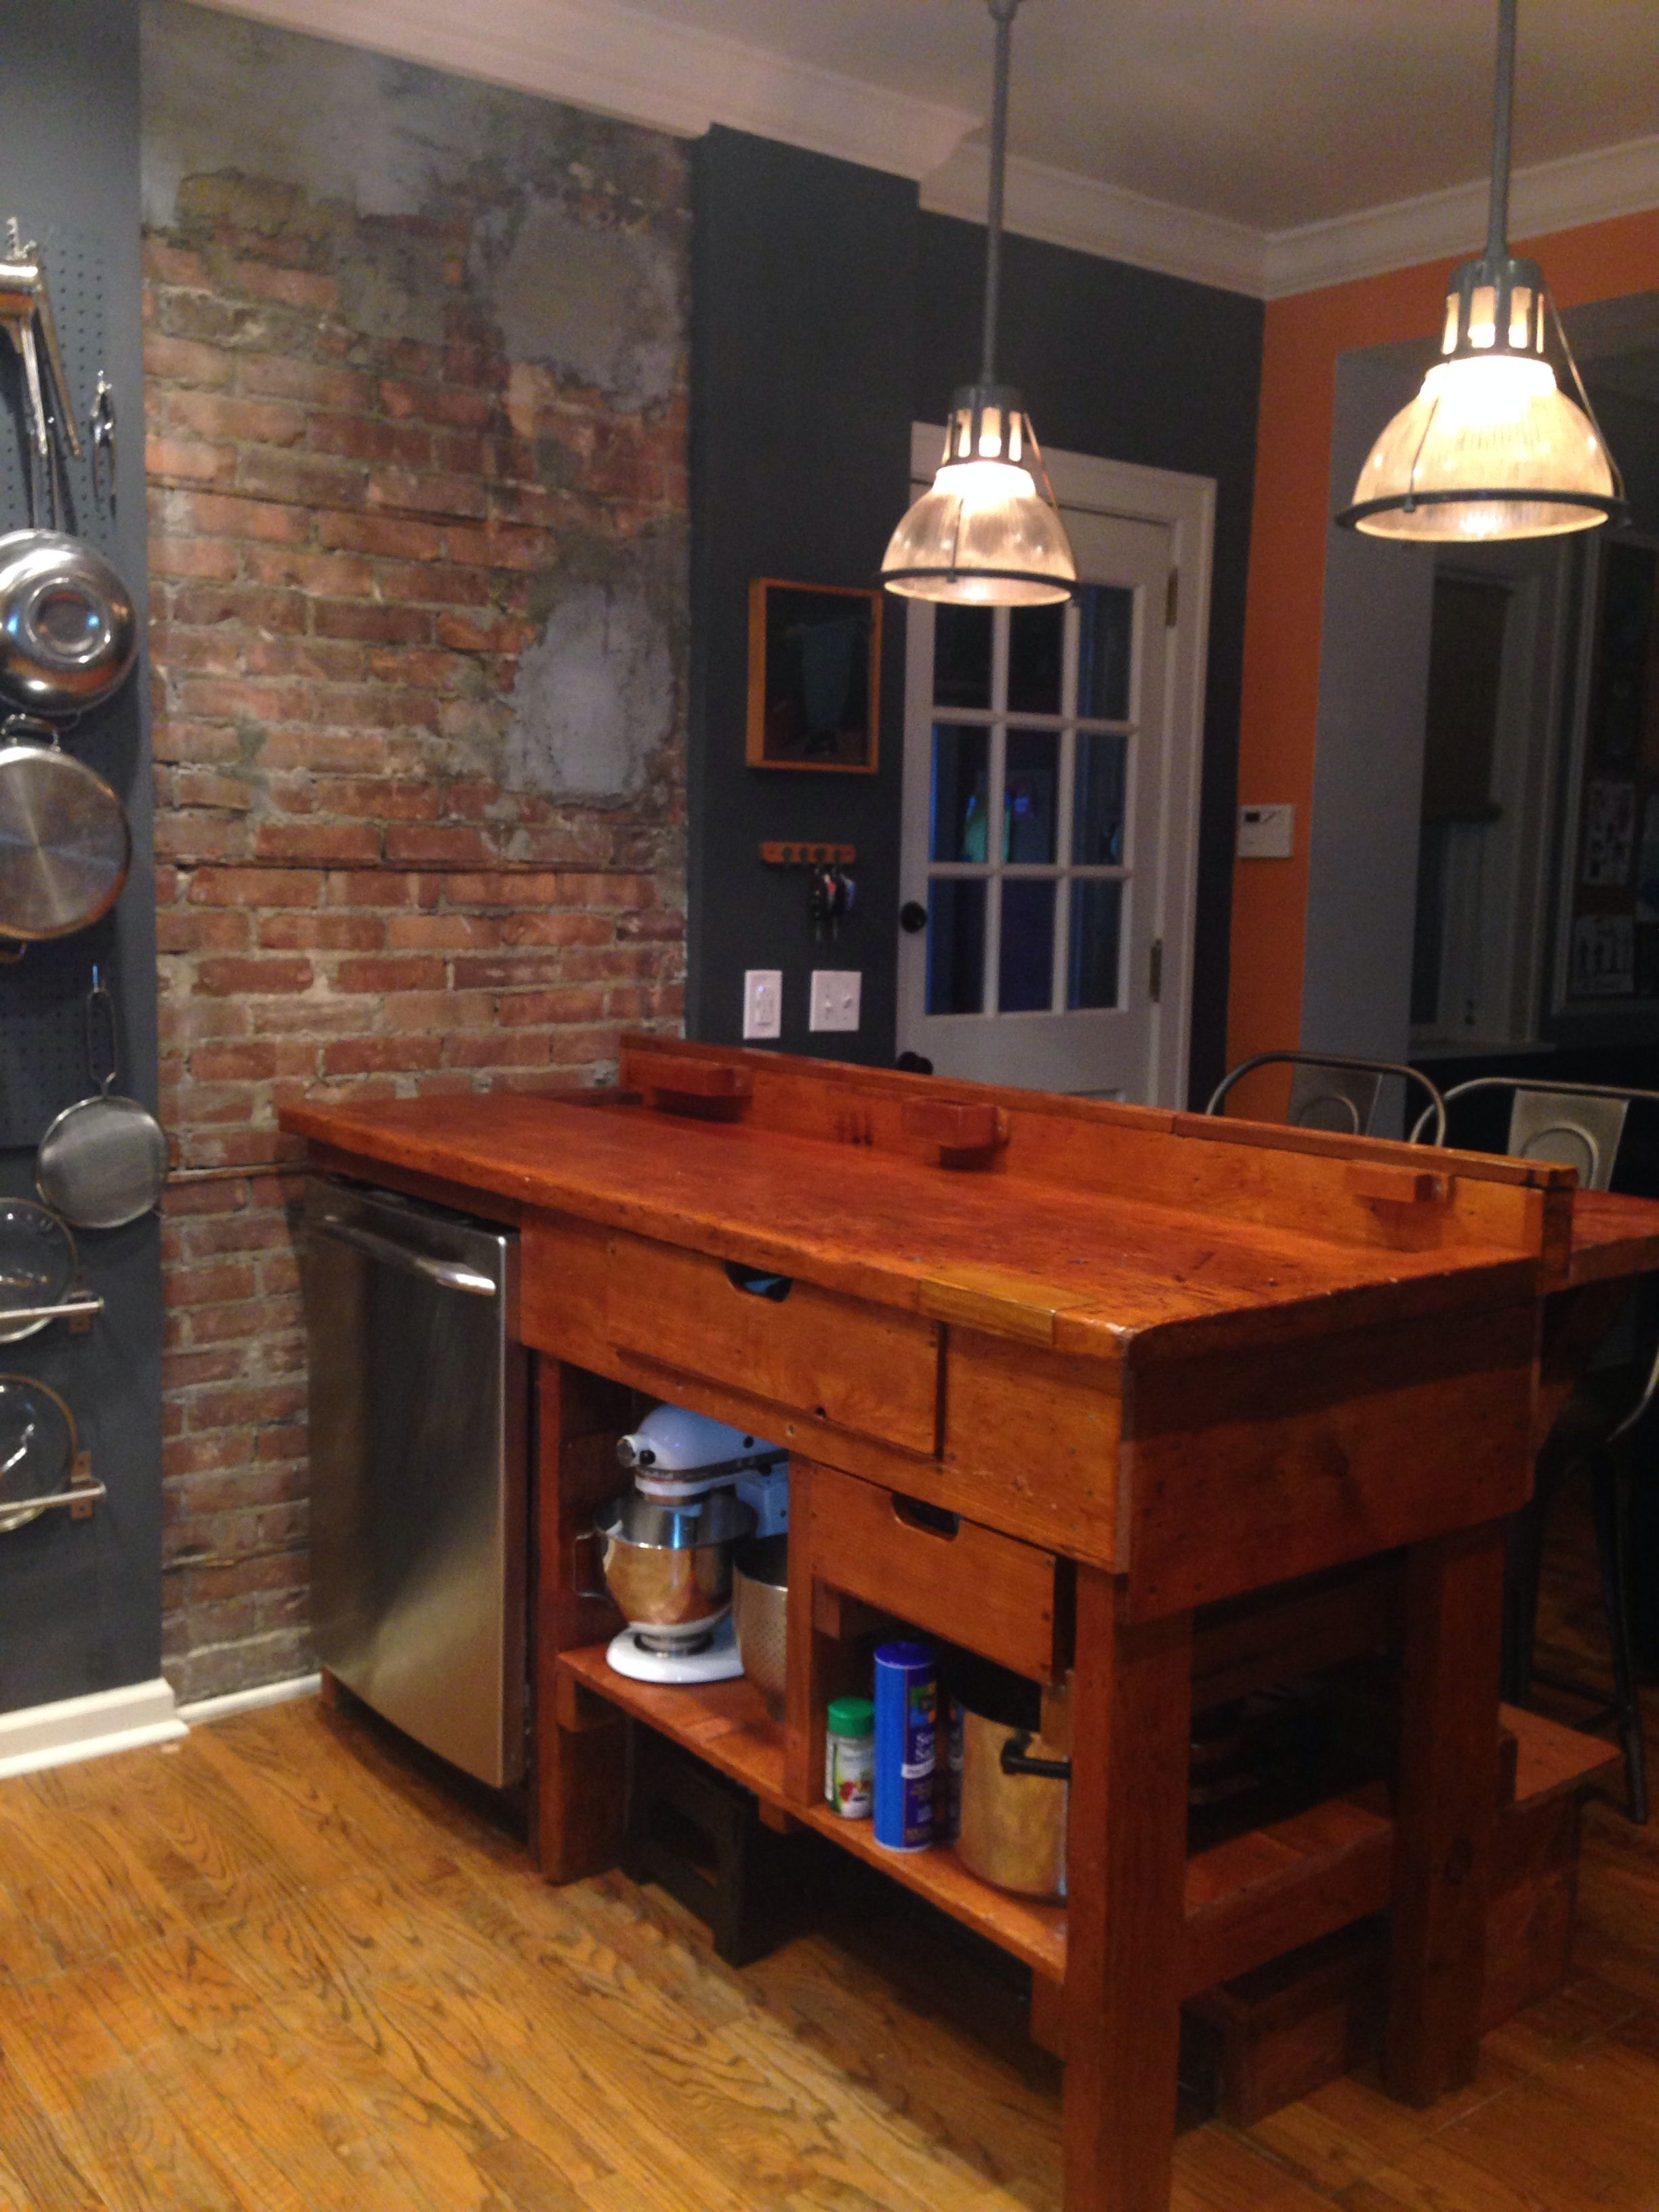 Antique Workbench Kitchen Island With Exposed Brick